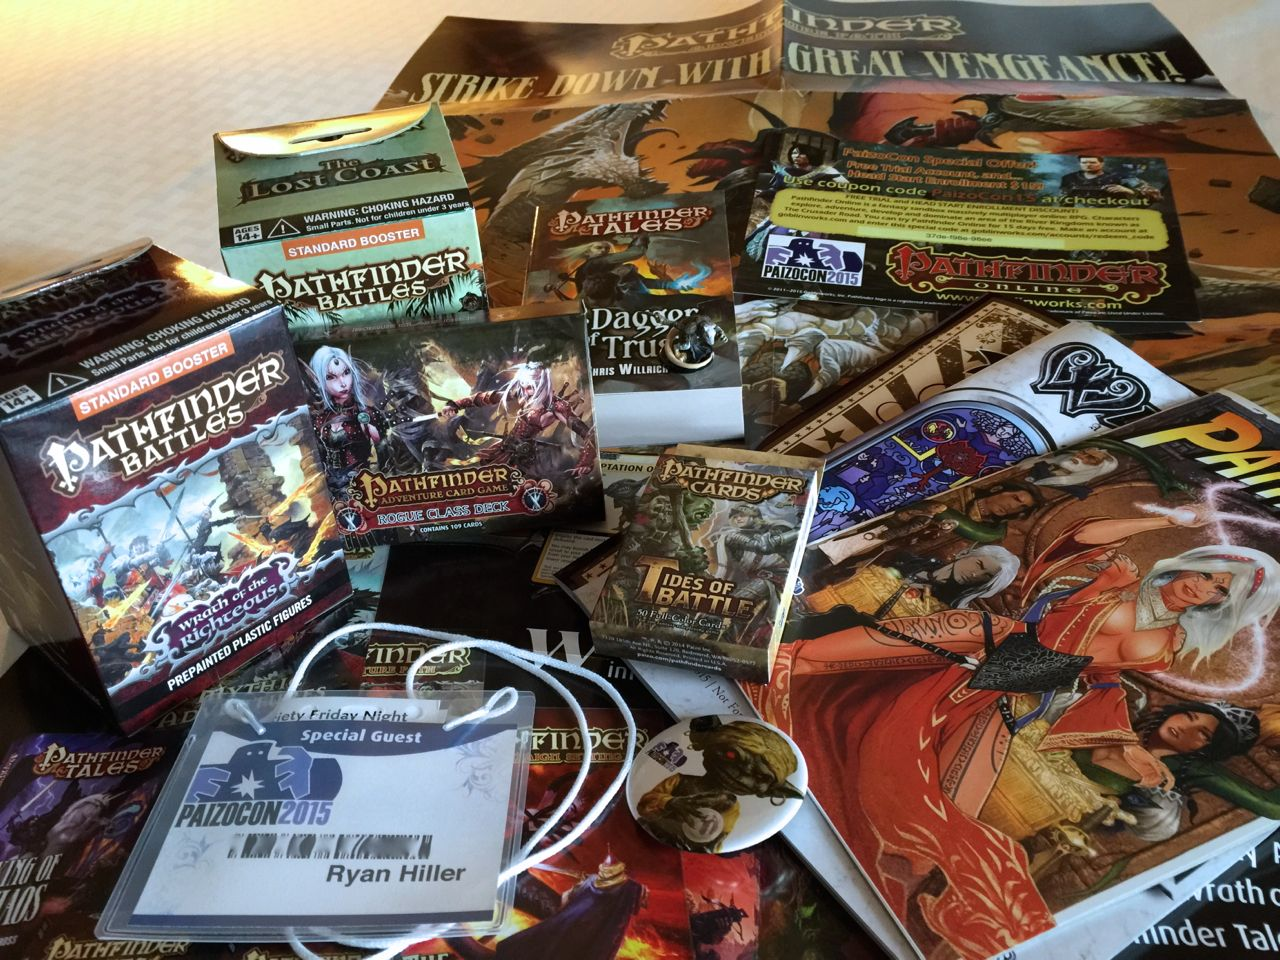 The contents of the PaizoCon swag bag.